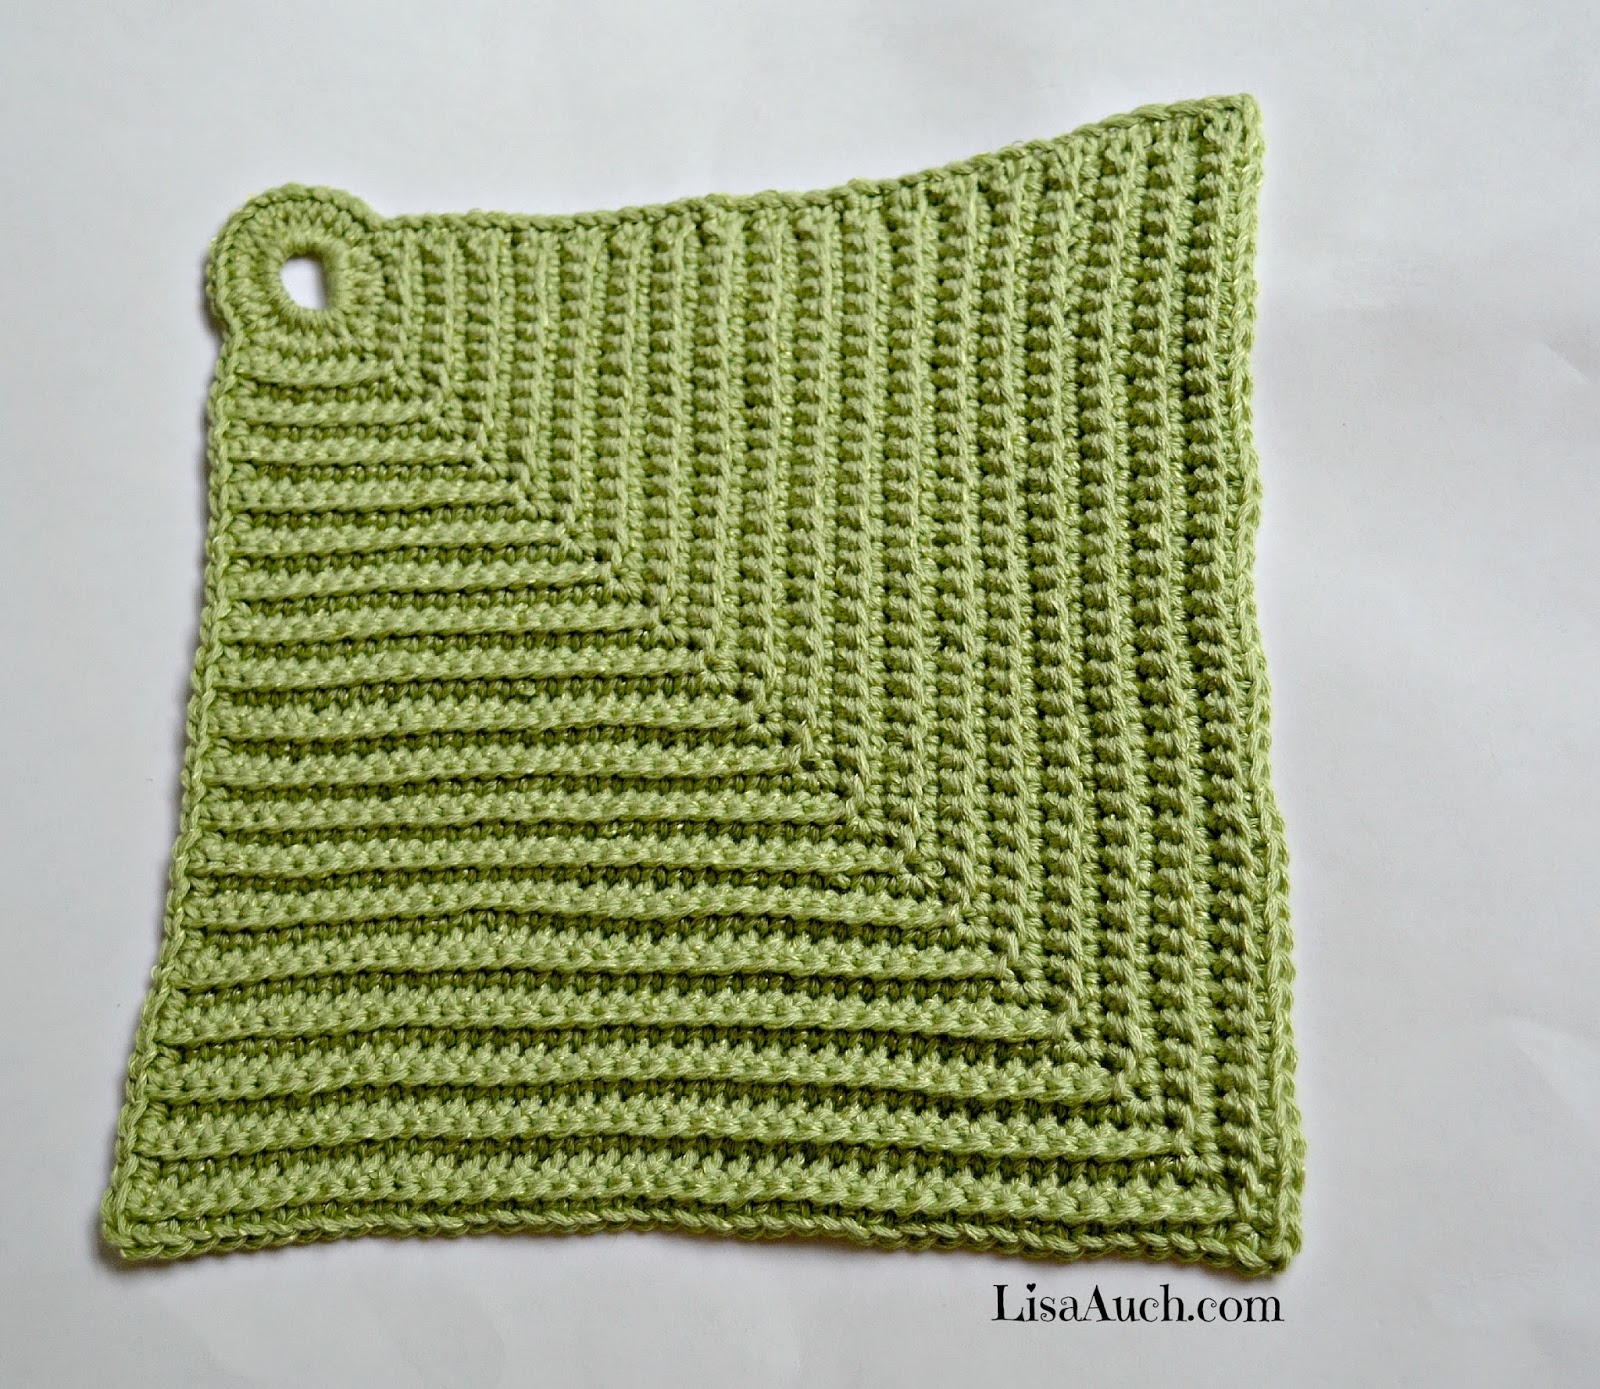 Free Crochet Pattern For Easy Dishcloth : Free Crochet Patterns and Designs by LisaAuch: Free Easy ...